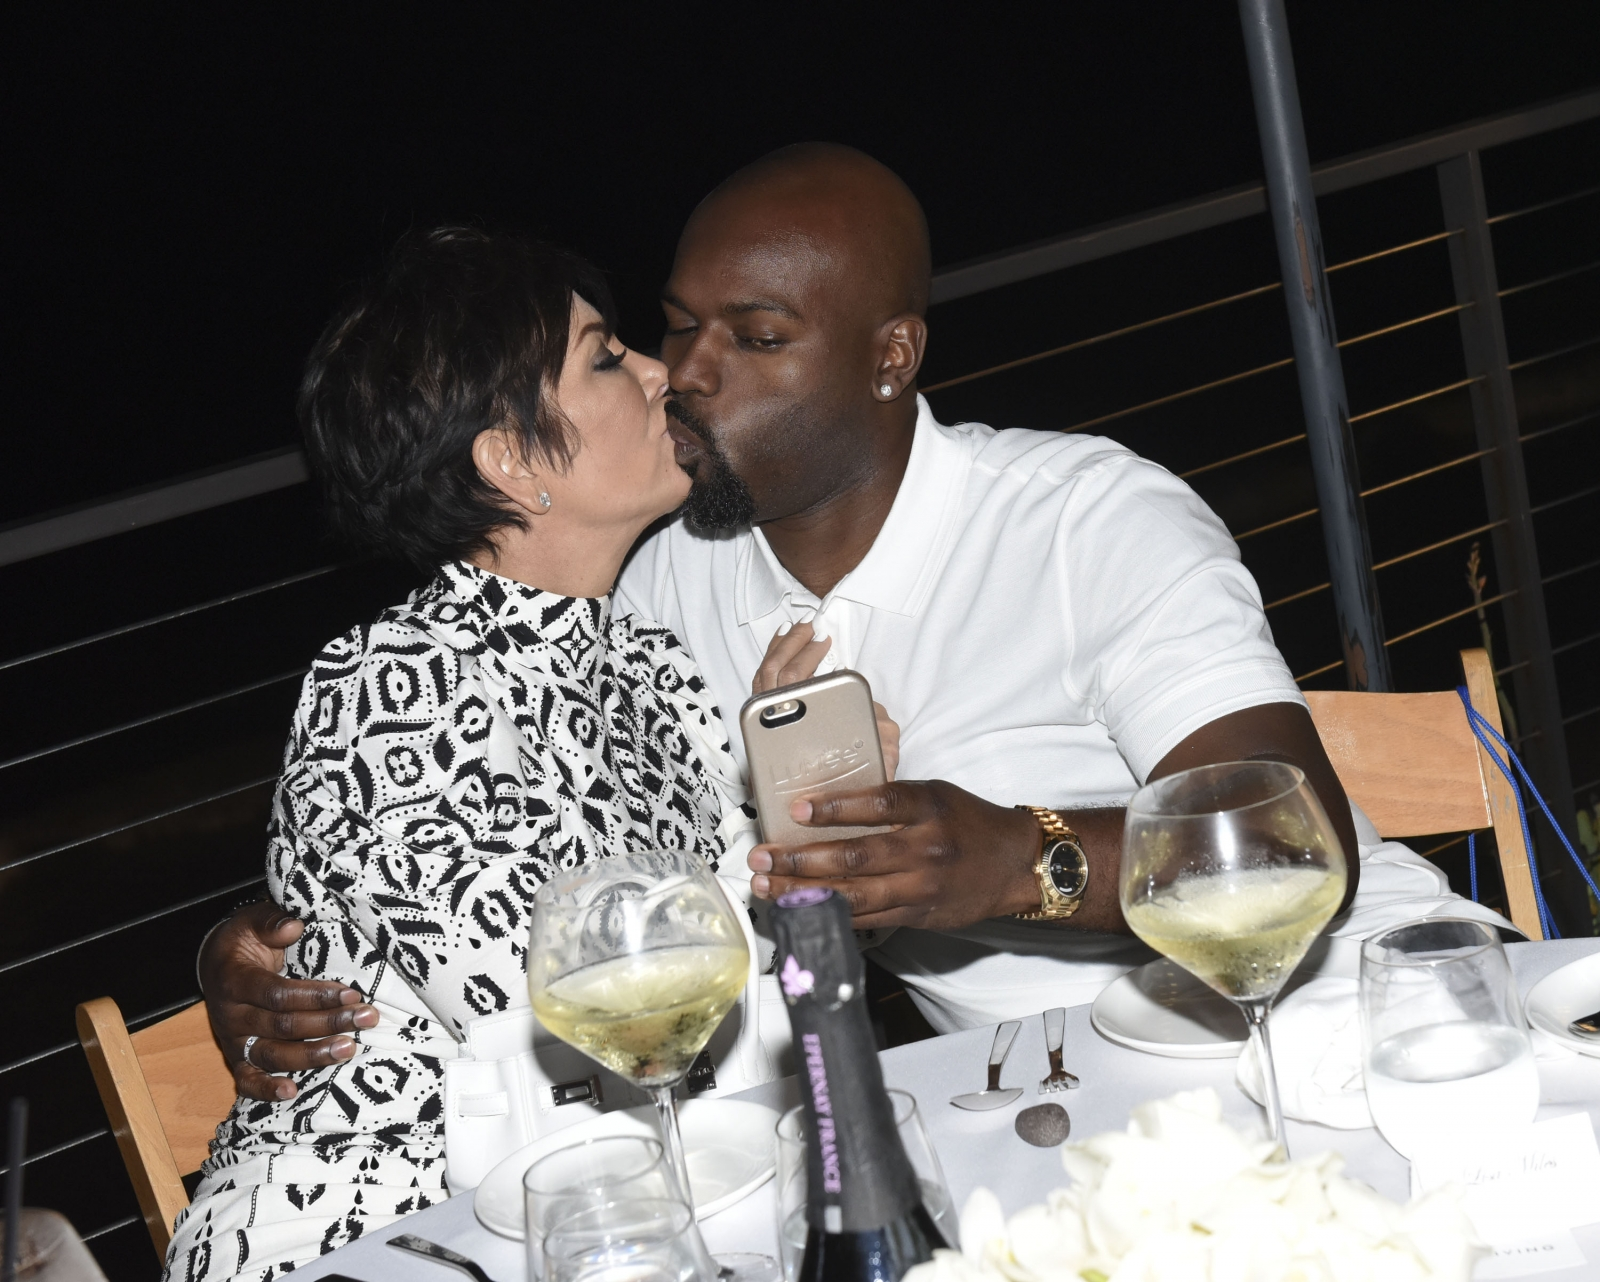 Kardashian ratings: Real reason Kris Jenner split up with 'rebound' Corey Gamble